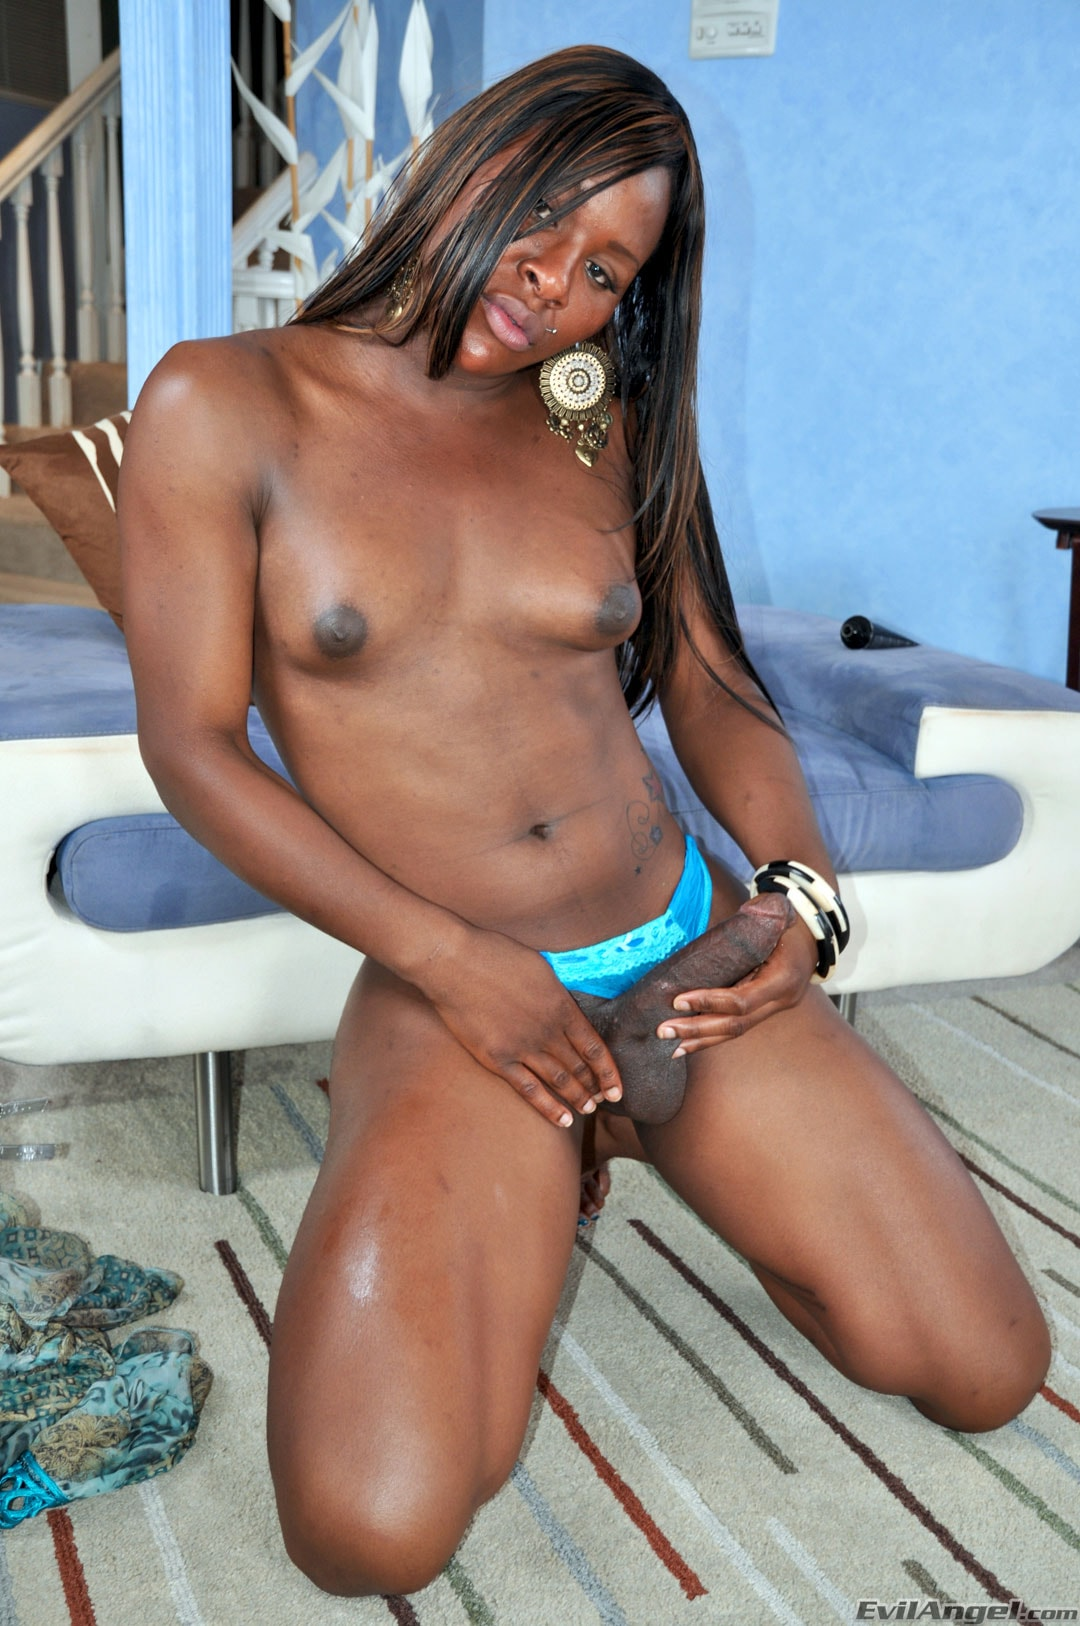 I Love Black Shemales 'Black Shemale Idol - The Auditions' starring Sex Kitten (Photo 24)